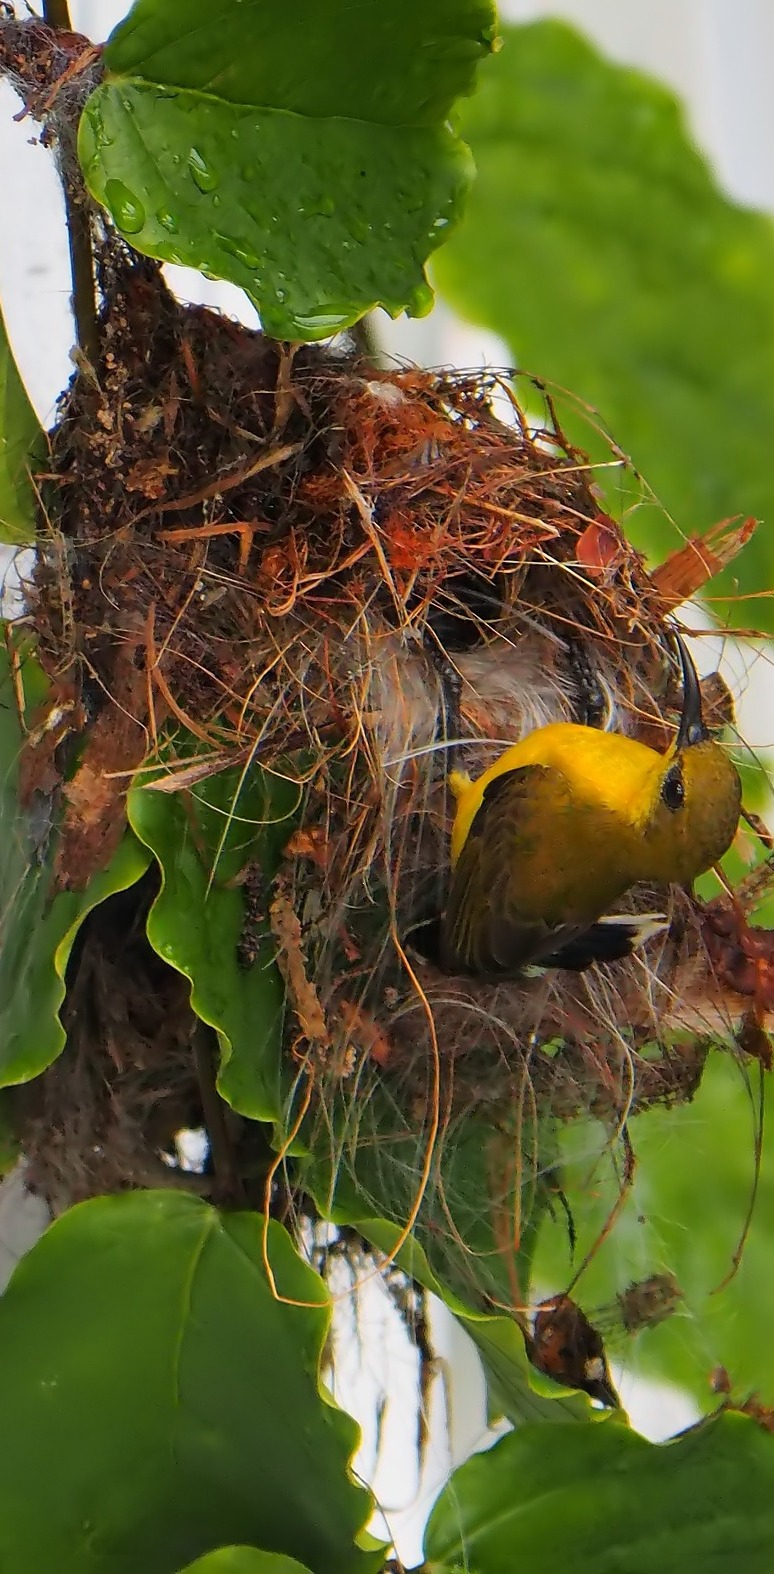 A female sunbird on it's nest.